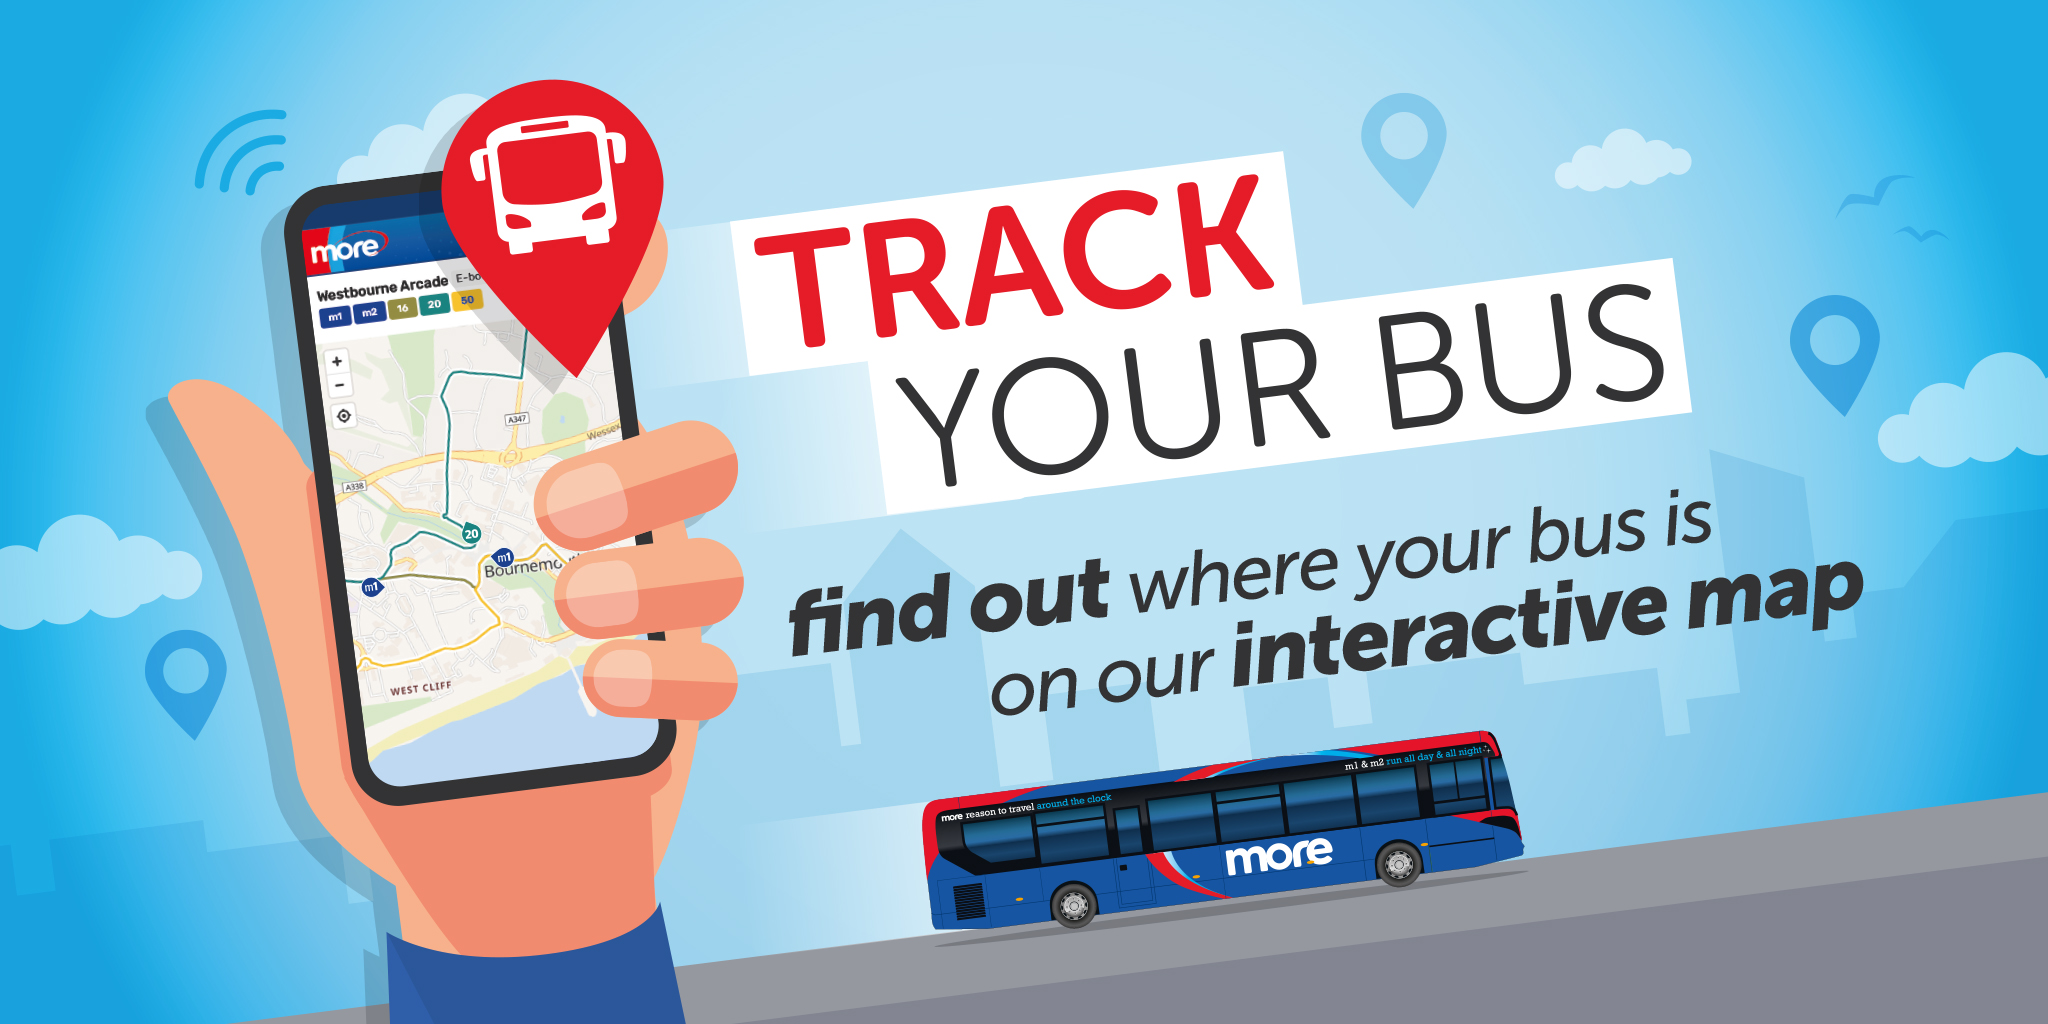 Image reading 'Track your bus. Find out where your bus is on our interactive map'